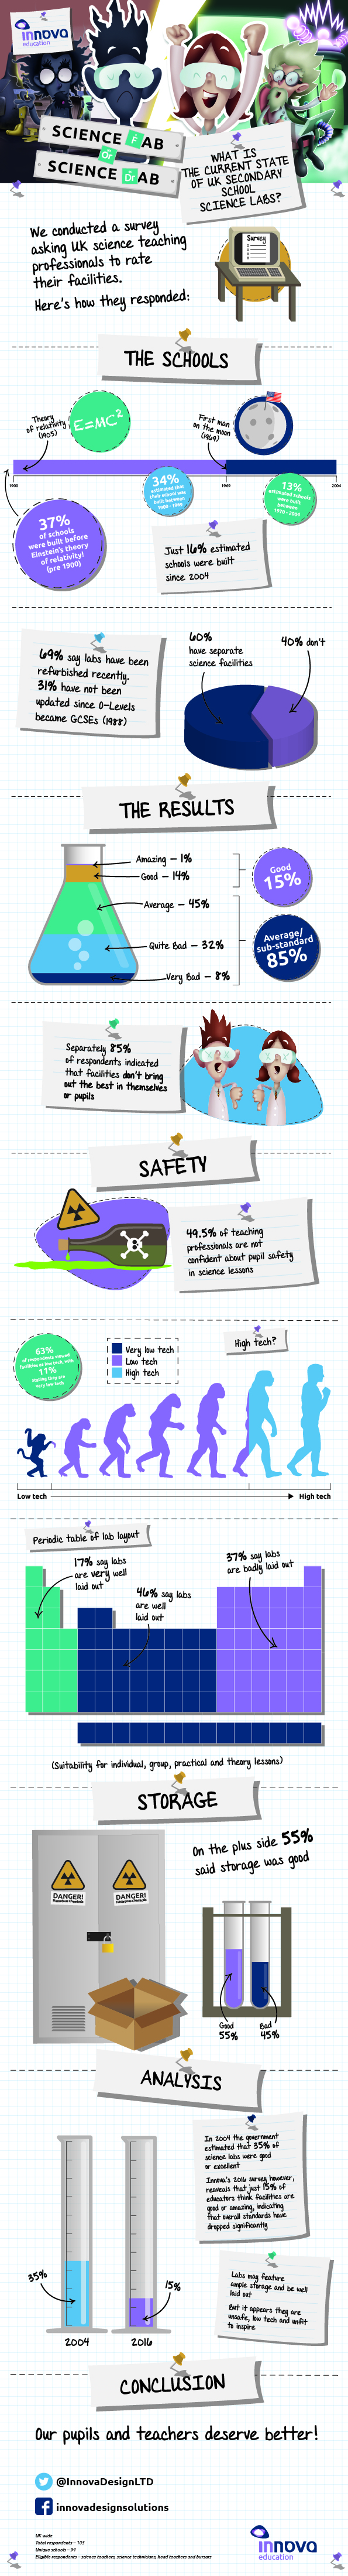 Secondary School Science Labs Infographic